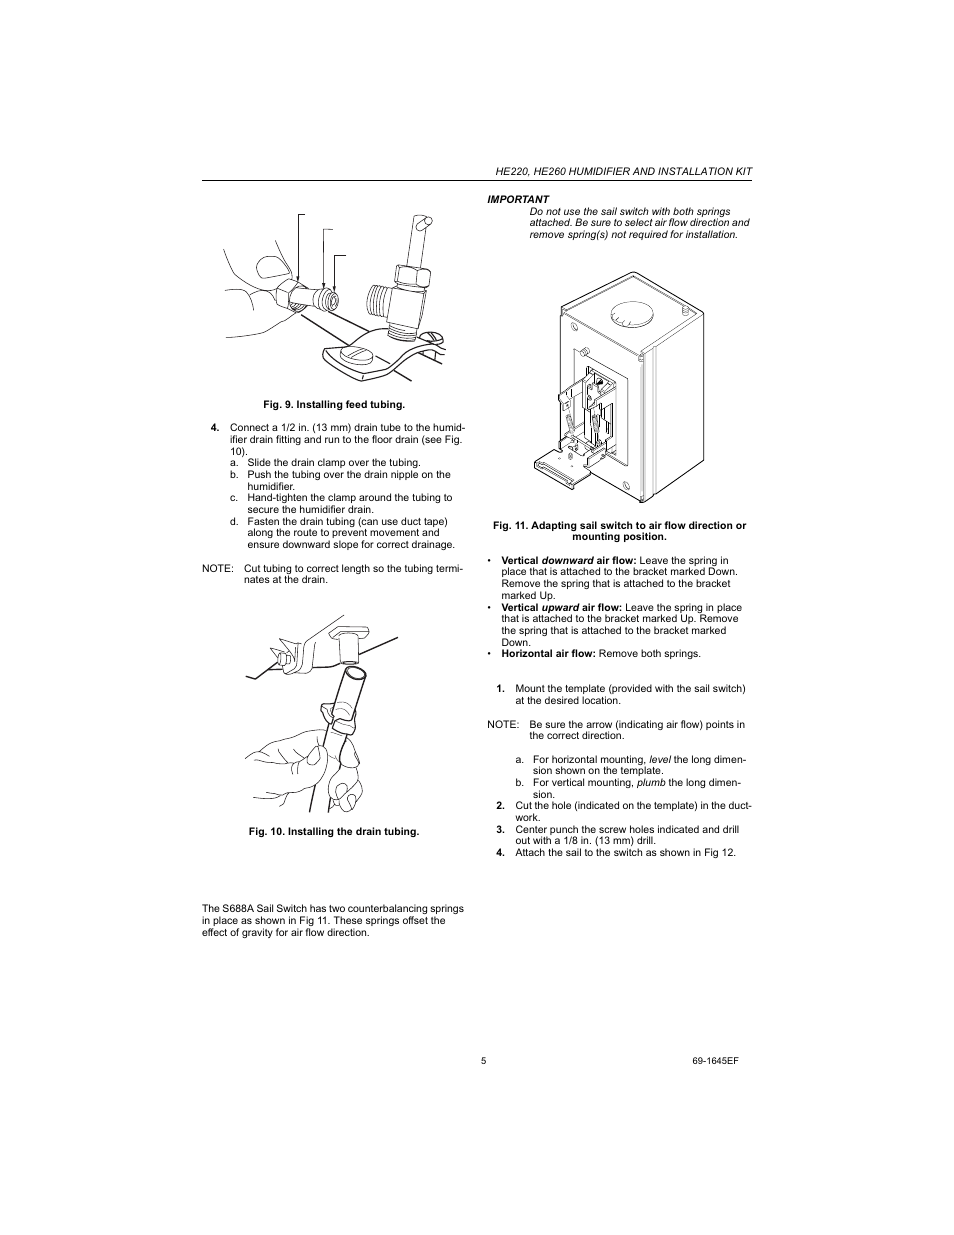 hight resolution of installing the sail switch adapting switch to air flow direction honeywell he220 manuel d utilisation page 5 24